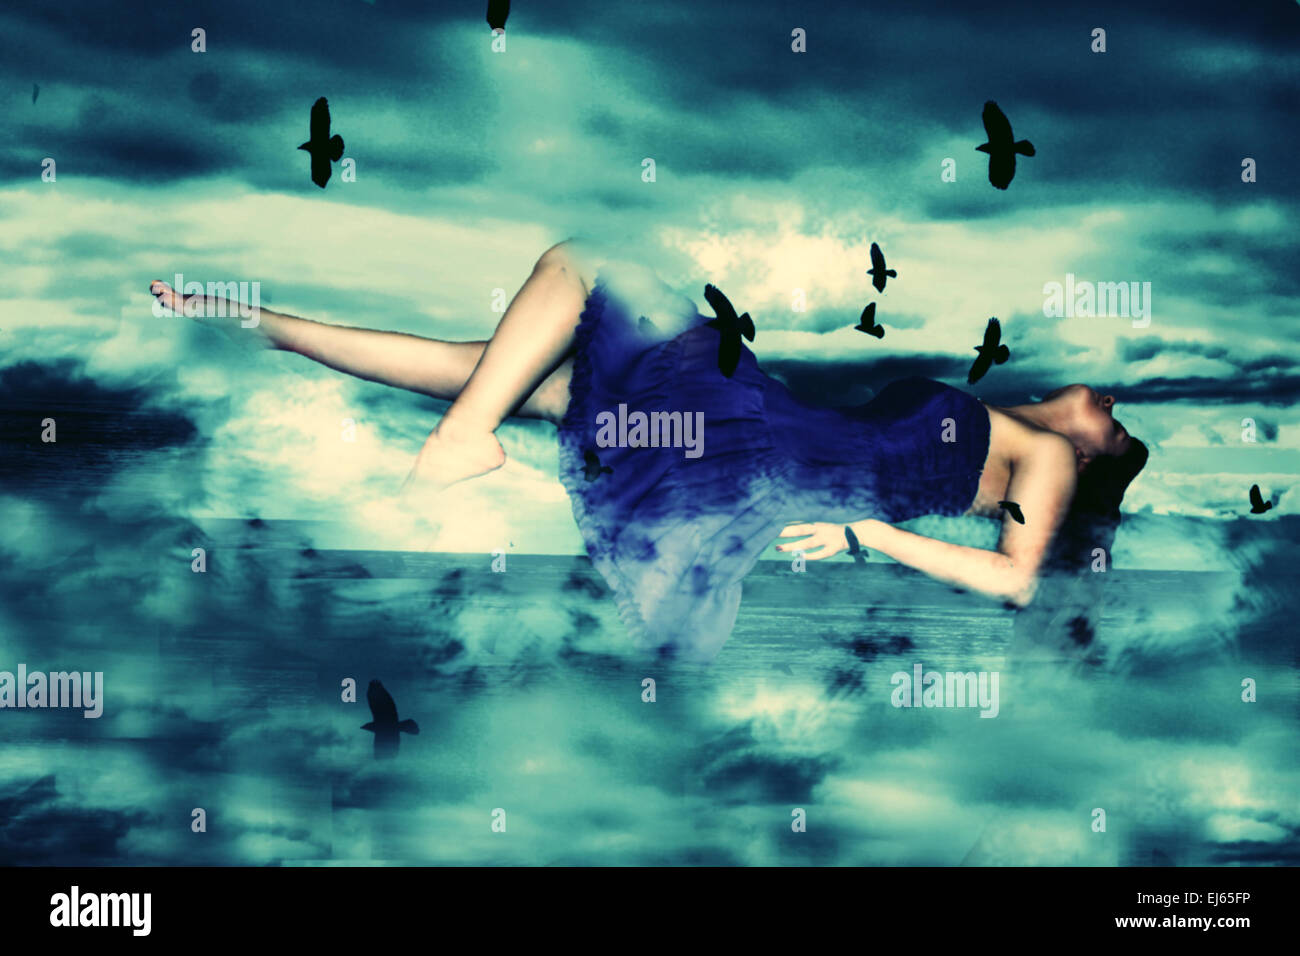 Surreal manipulation - Stock Image